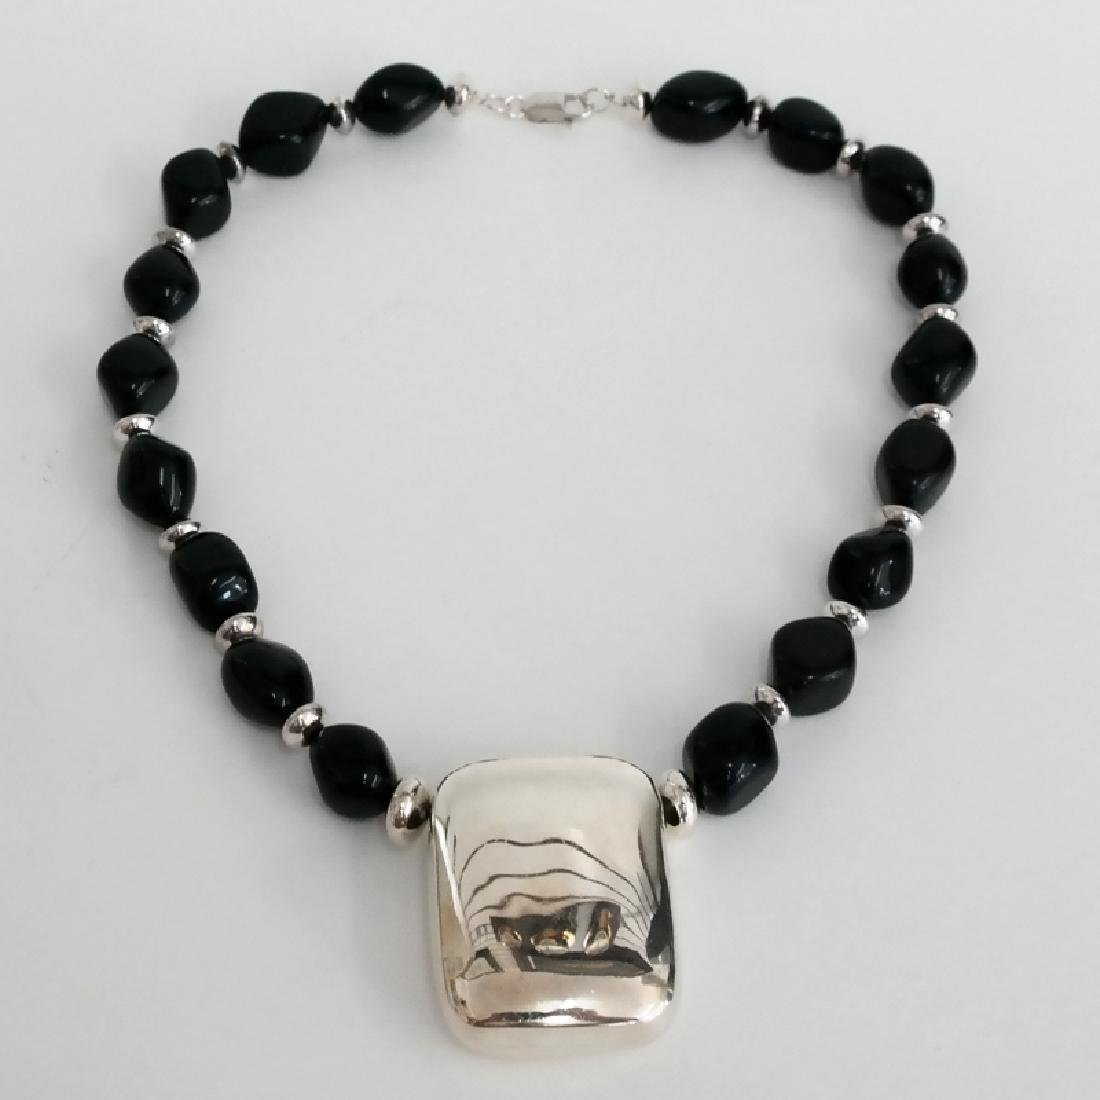 Black onyx free shape beads and sterling silver hollow